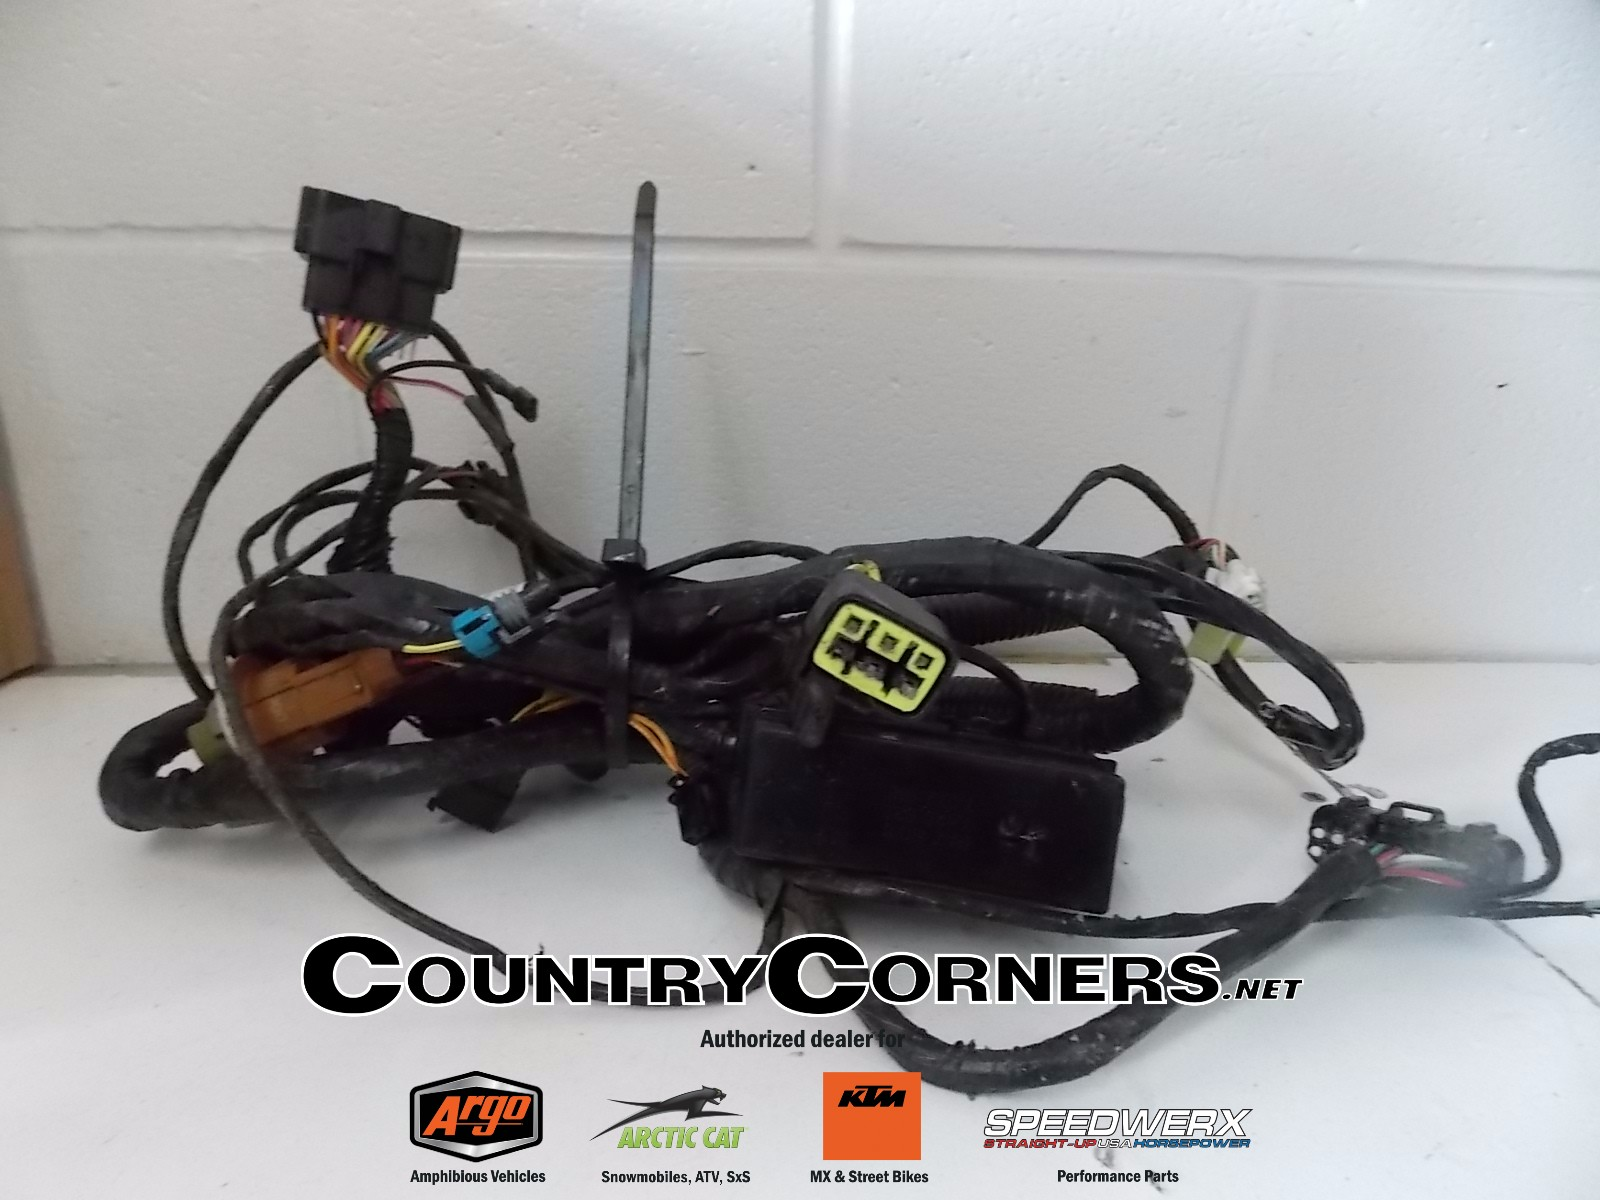 H Wiring Harness on lc2 harness, h2b harness, tandem harness, r1 harness, h11 harness,